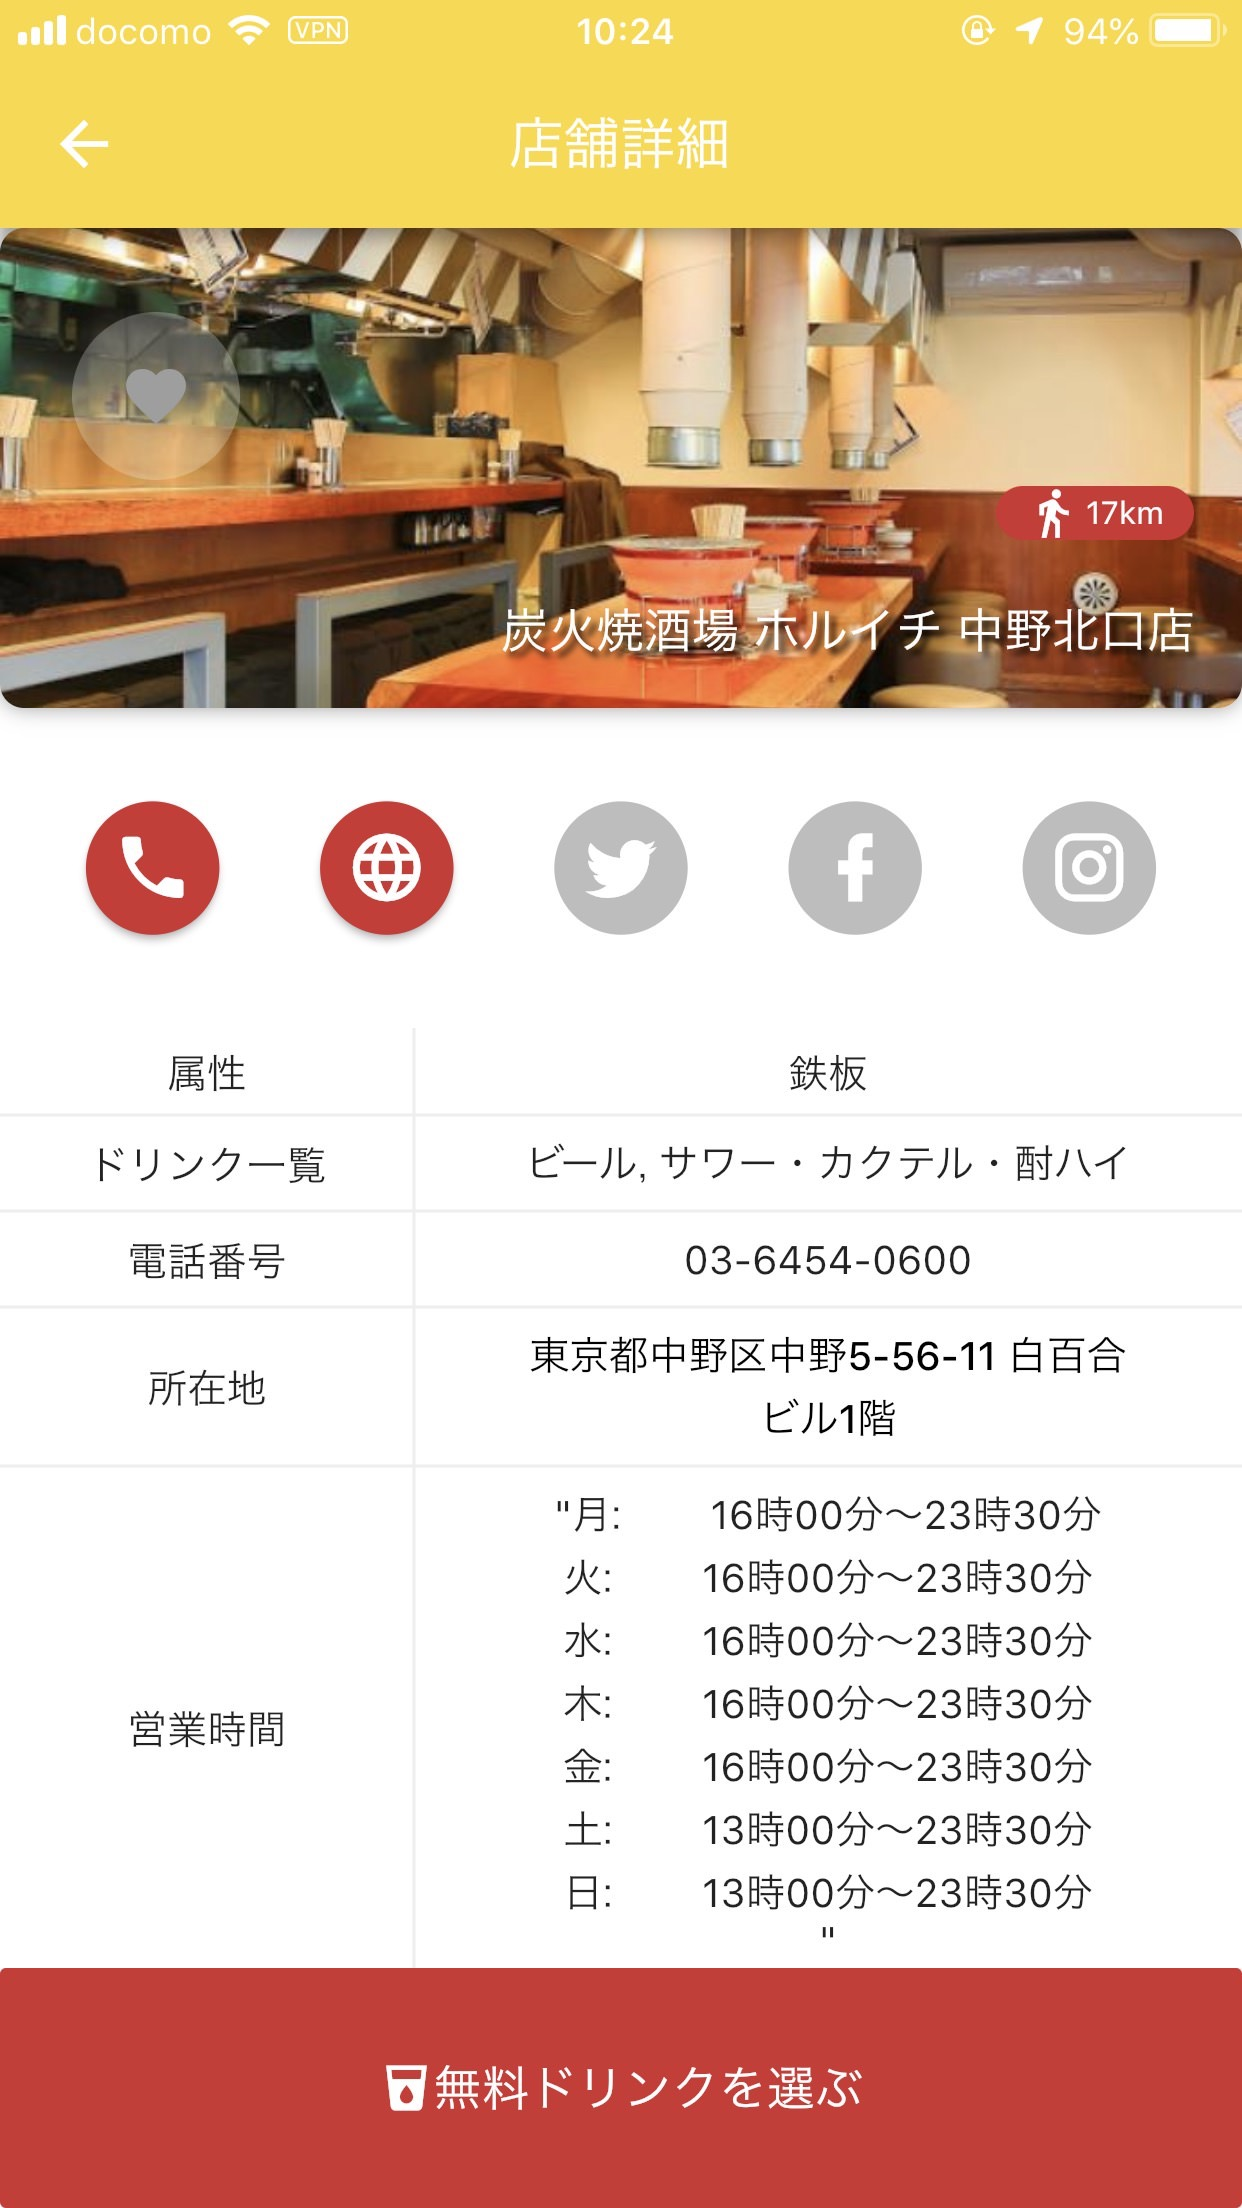 【iOS/Android】月額500円で毎日乾杯ドリンクが呑める飲食店検索アプリ「nomocca(のもっか)」 1